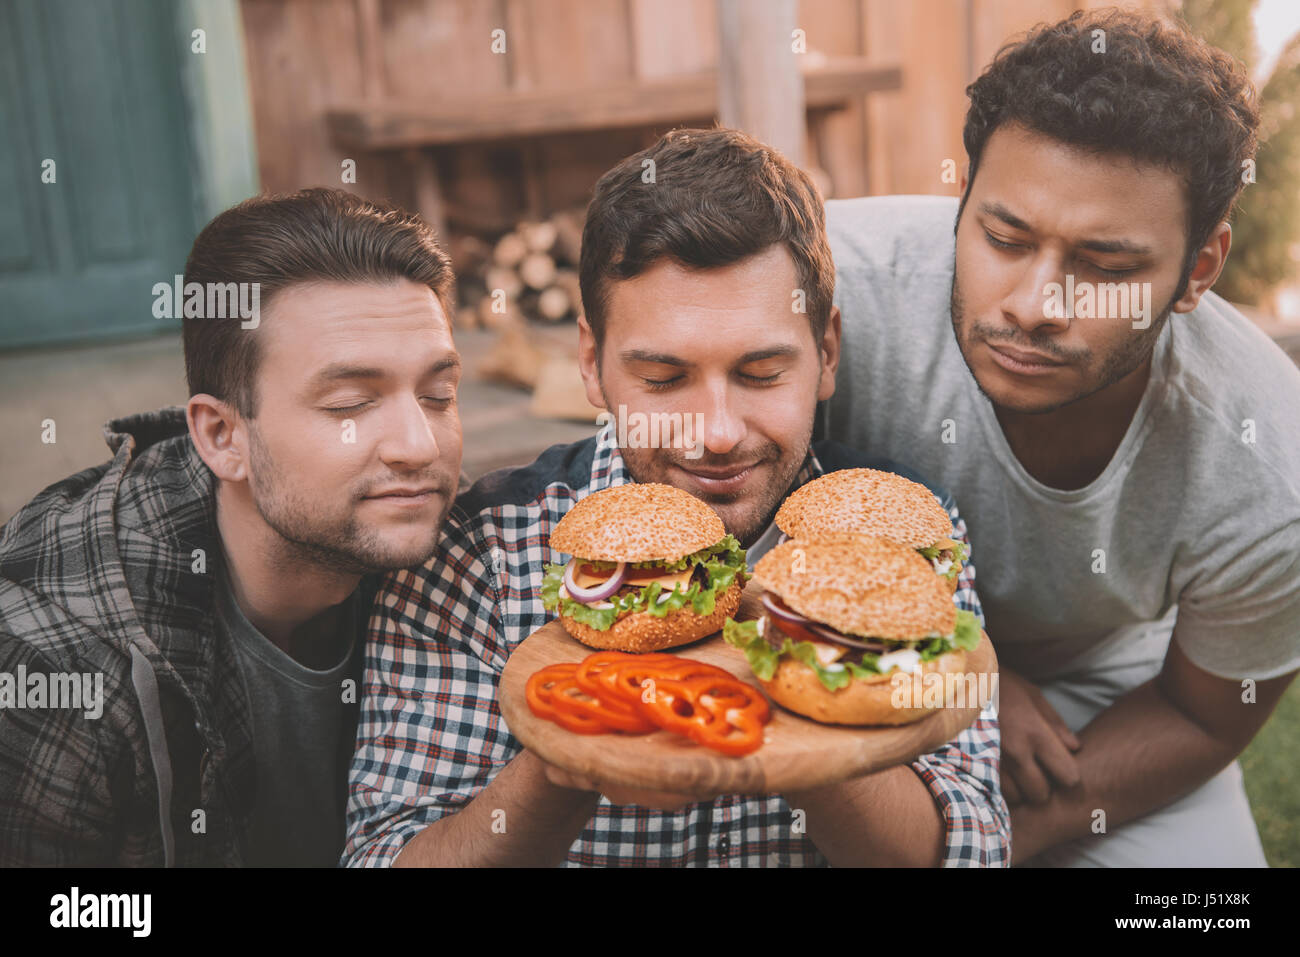 Three young men with closed eyes sniffing fresh homemade hamburgers - Stock Image